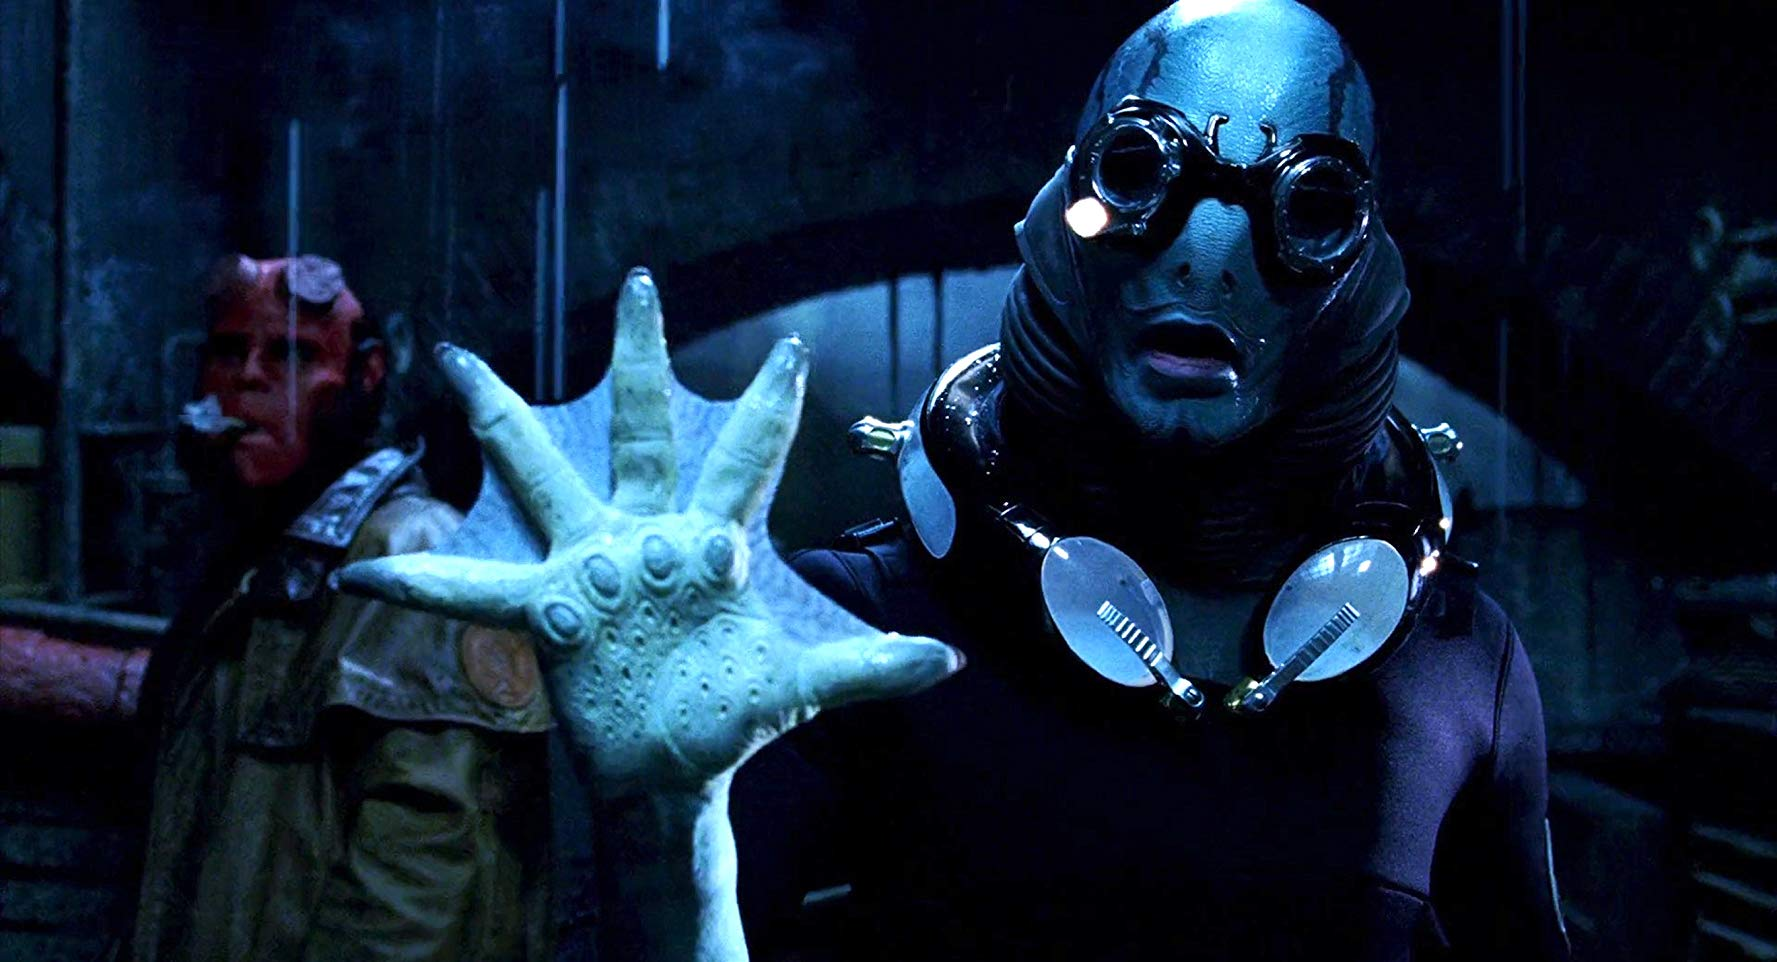 (l to r) Hellboy (Ron Perlman) and Abe Sapien (Doug Jones) in Hellboy (2004)